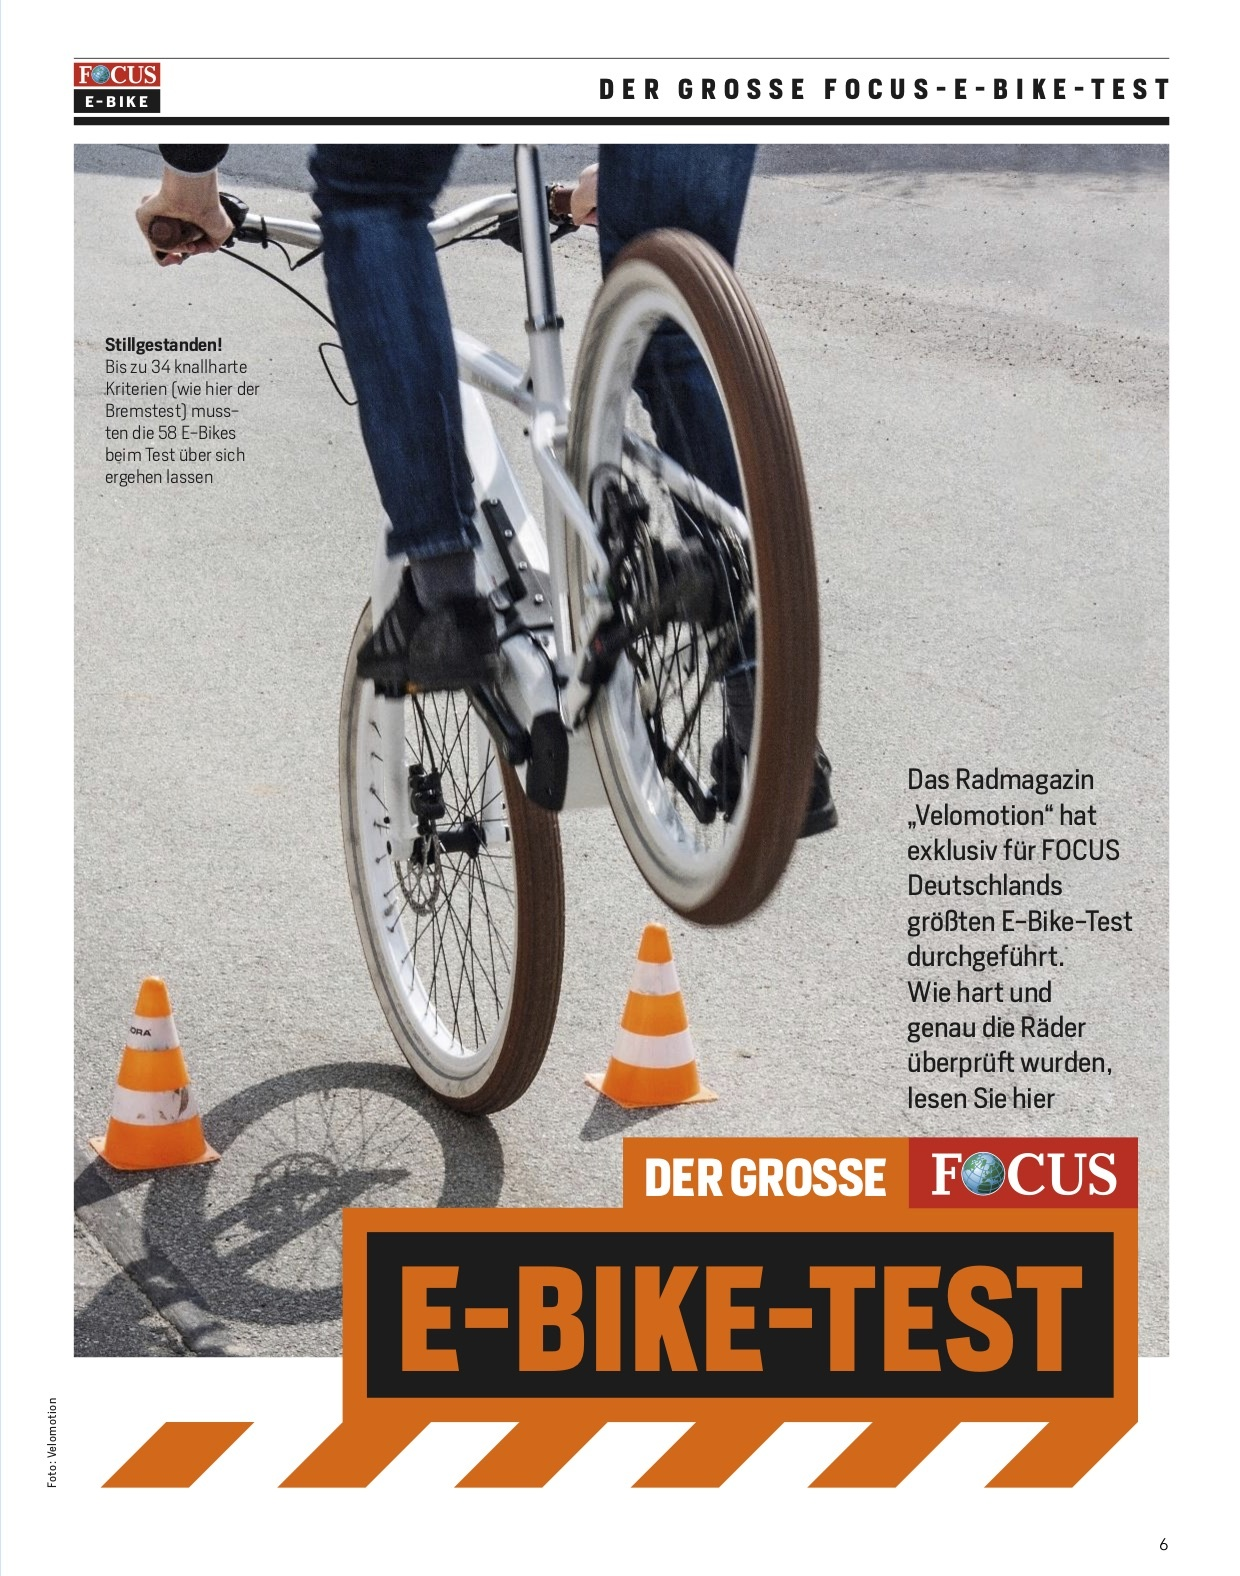 FOCUS E-BIKE- 5 Jahre E-BIKE Tests